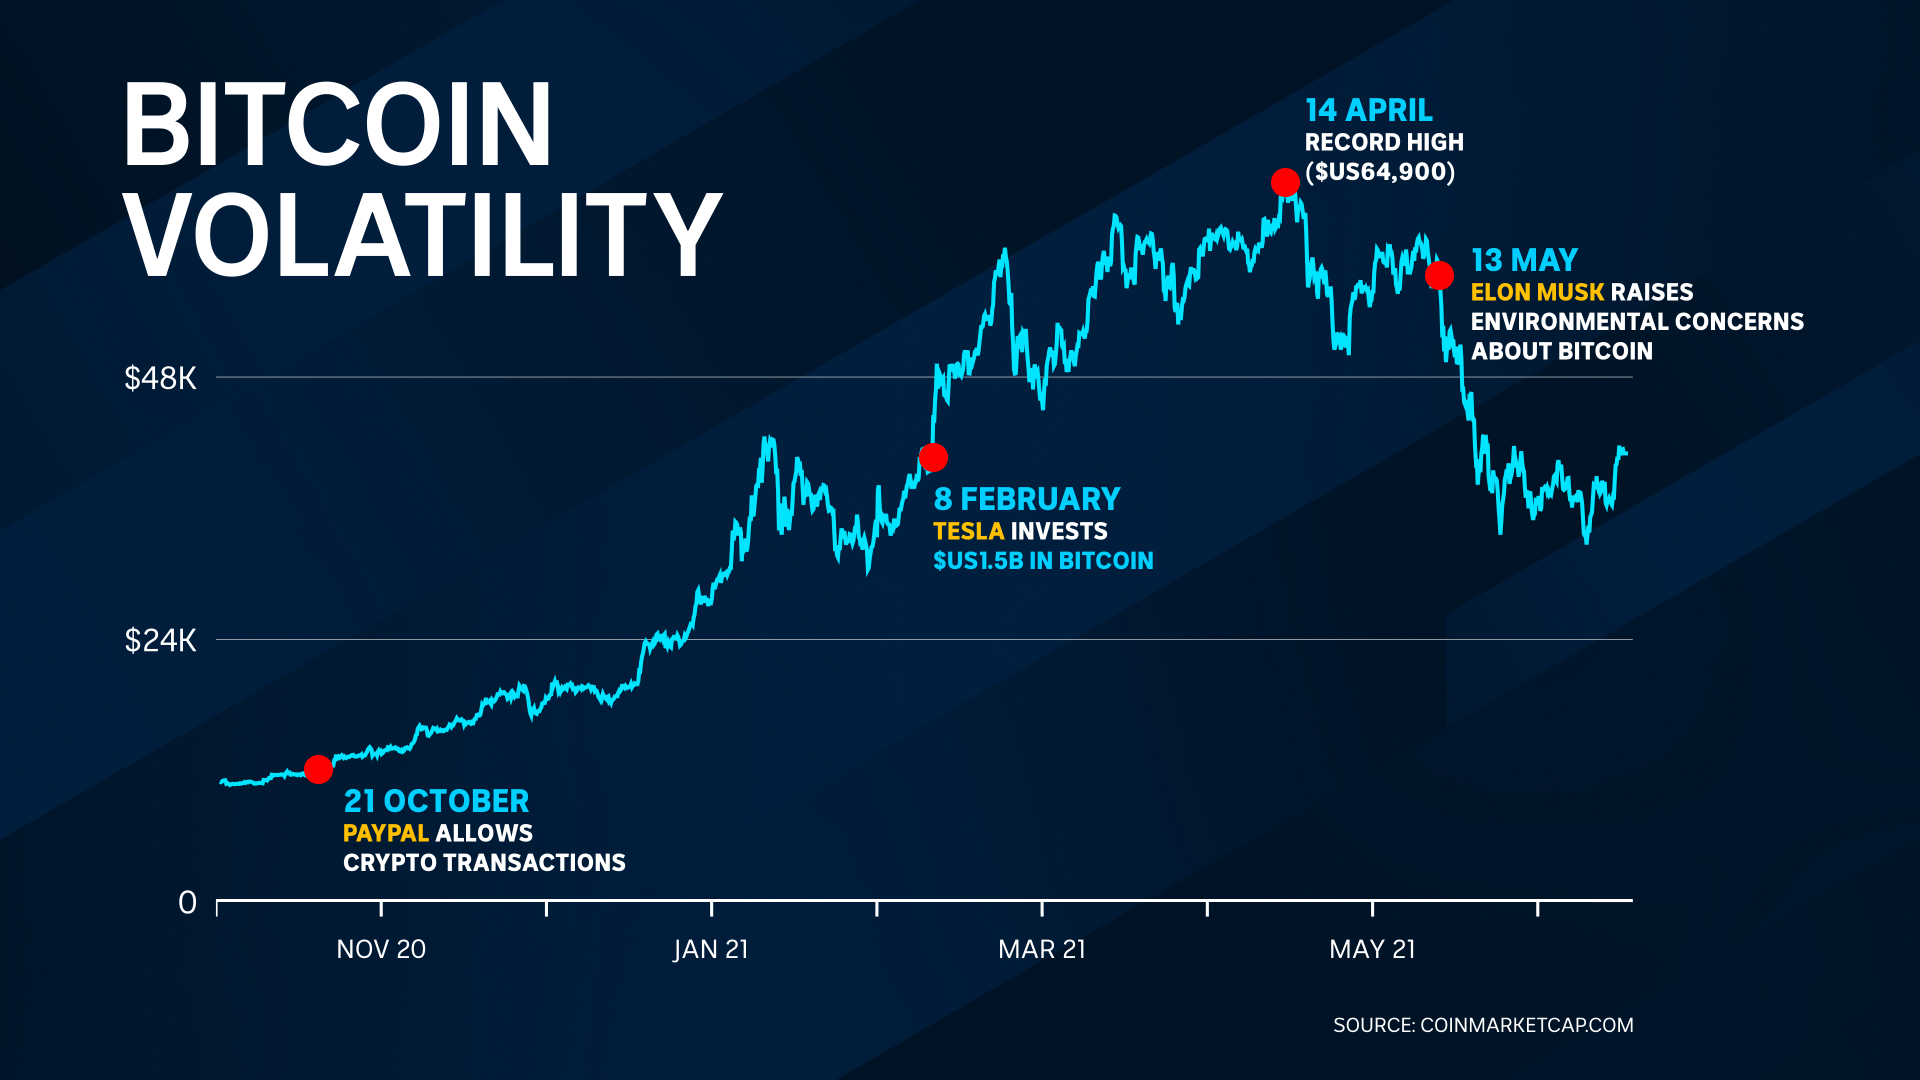 A line graph showing bitcoin's price, which peaked at $US64,900 on April 14, 2021.